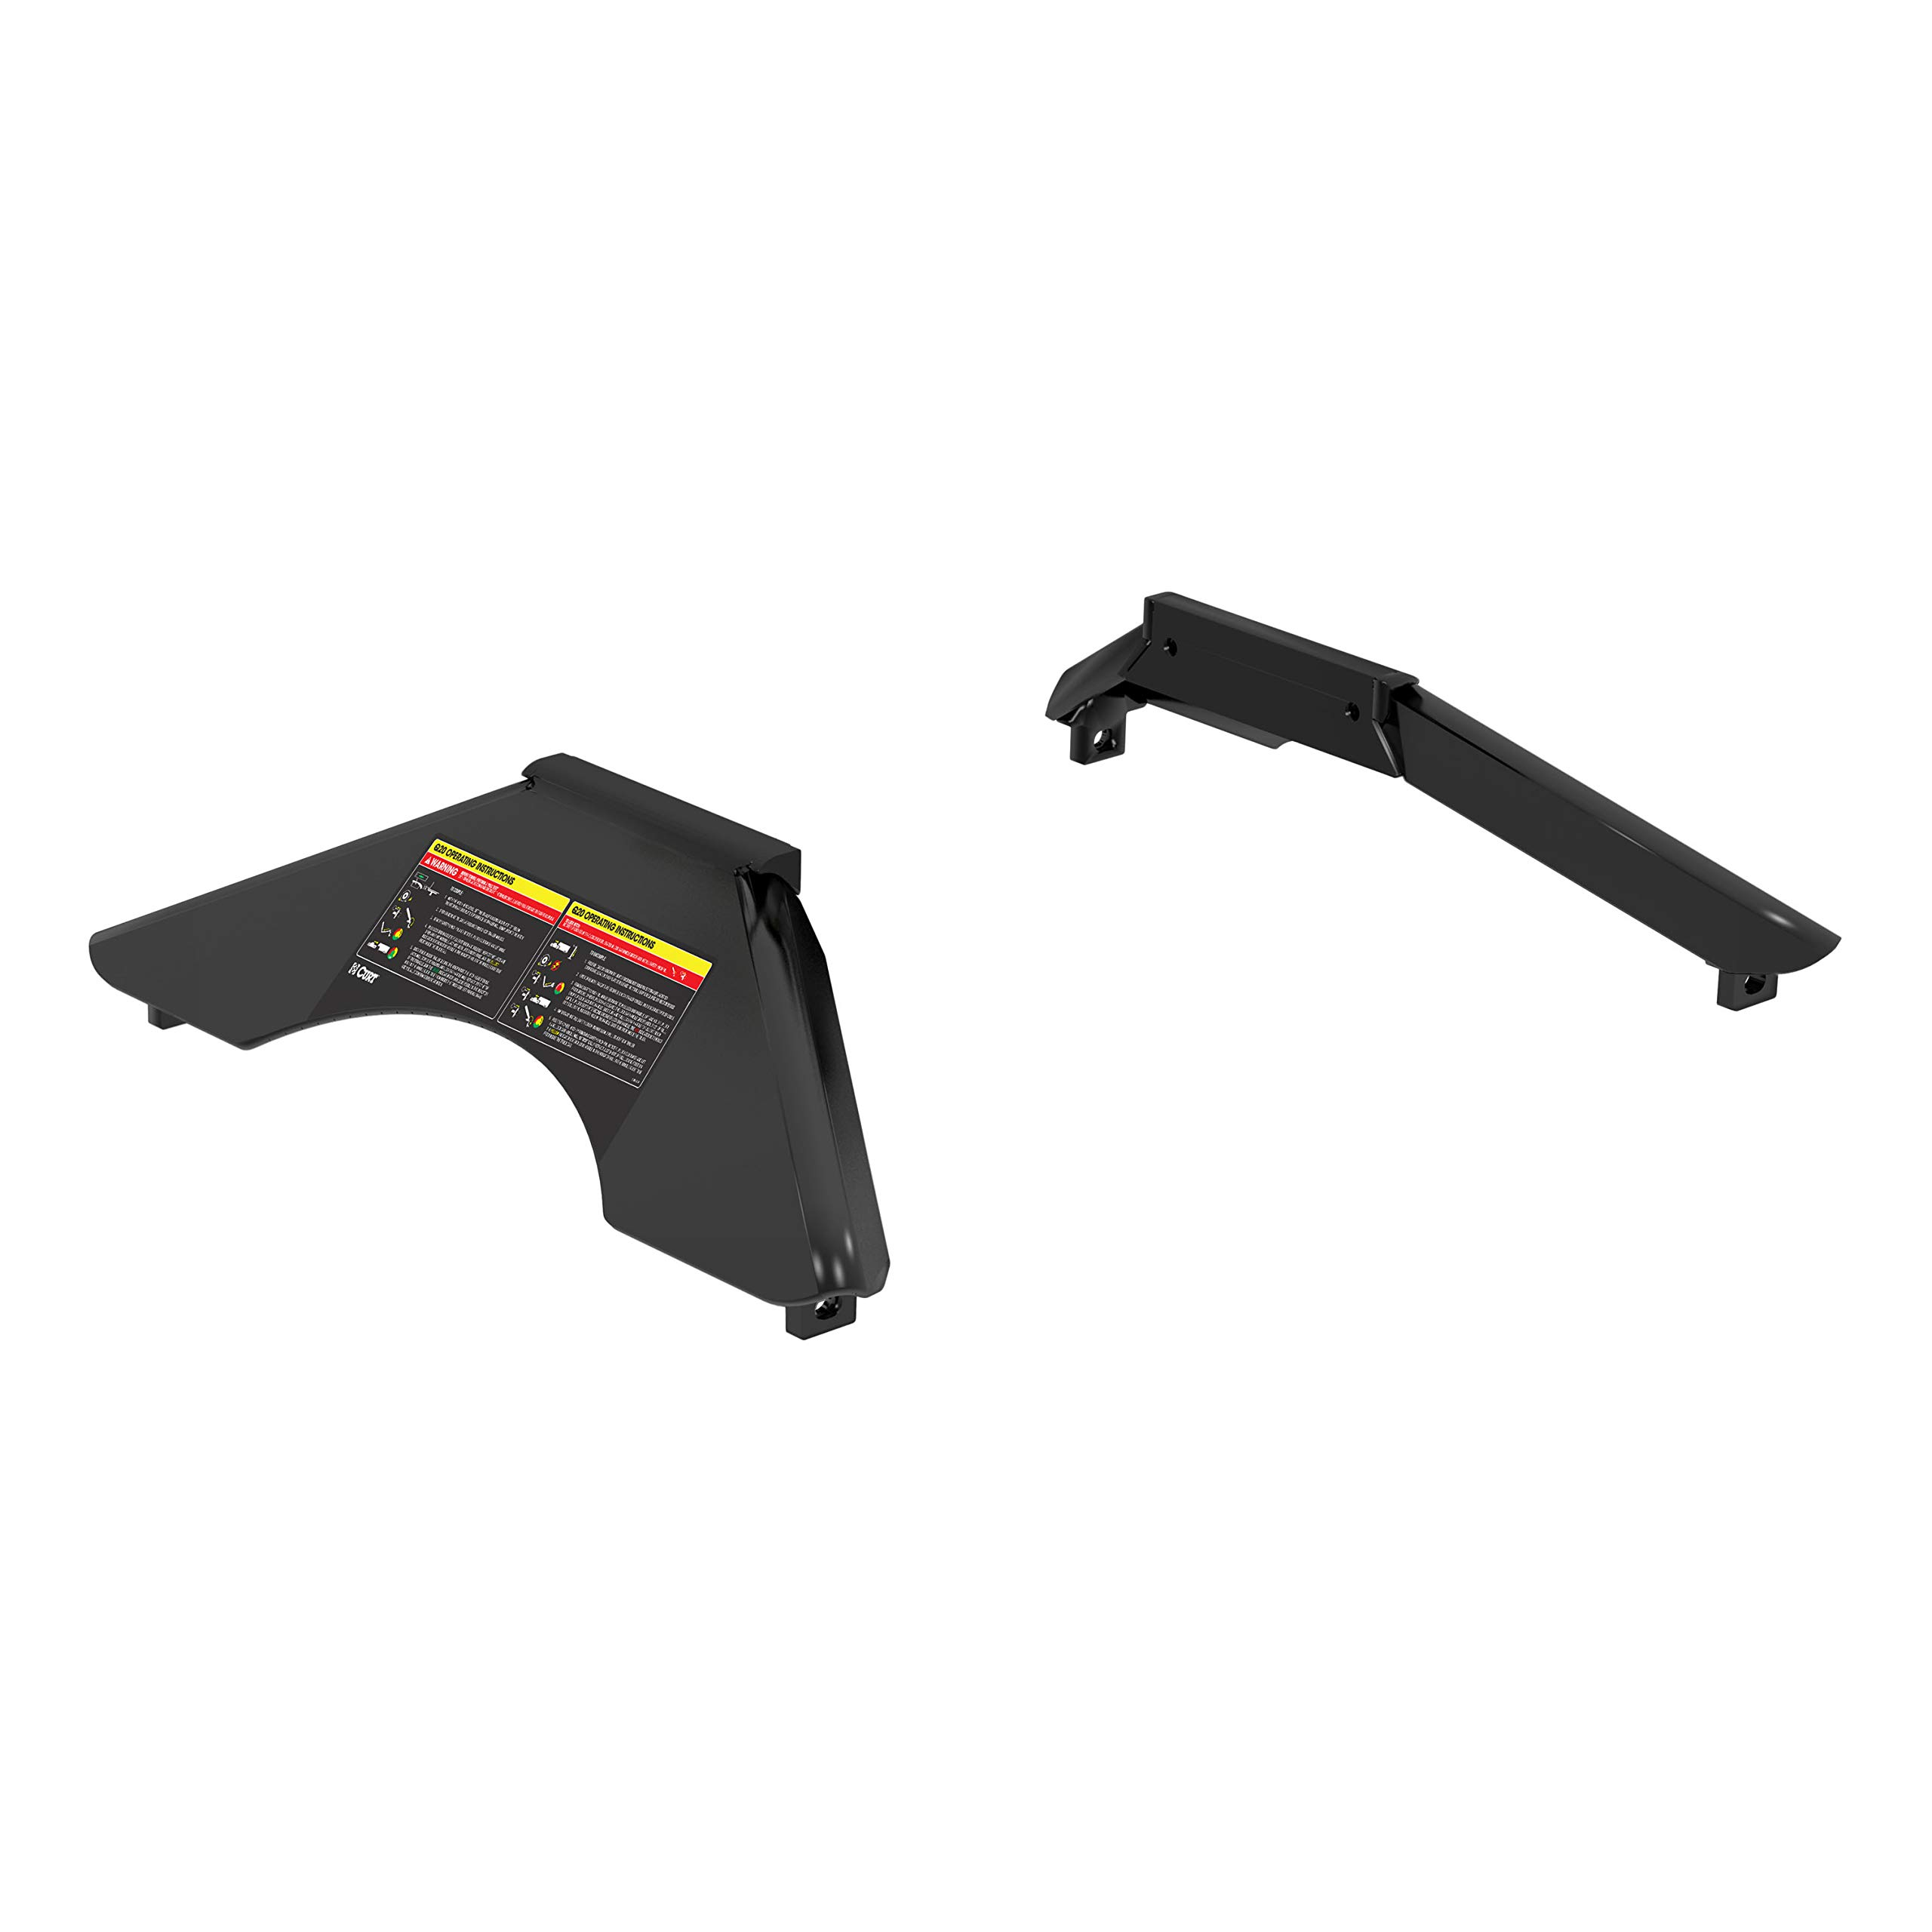 CURT 16904 Replacement Legs for CURT Q20 Fifth Wheel Hitch Head #16530 by CURT